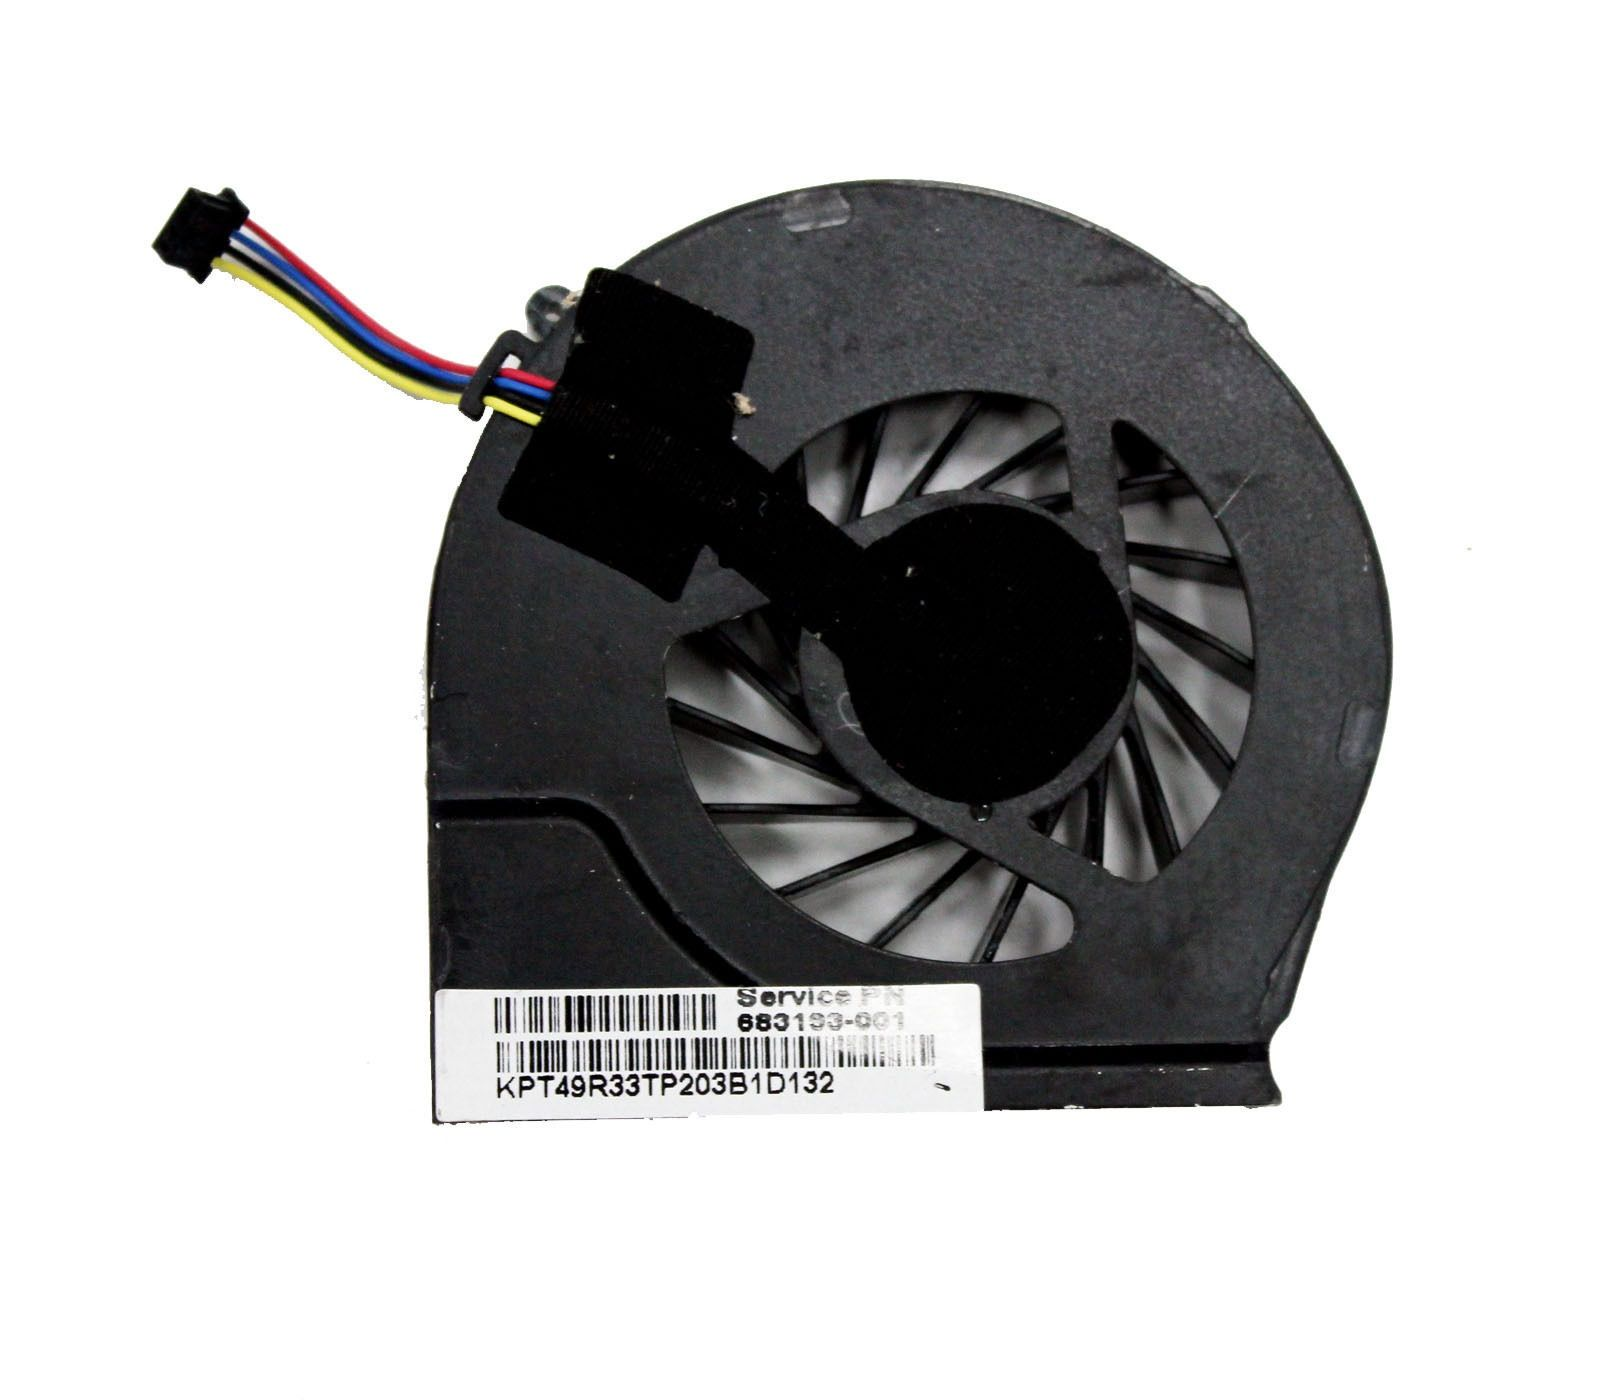 Hp 680551 001 Fan Module G4 2000 G6 2000 G7 2000 Series New Cpu Cooling Fan 0 5a For Hp Pavilion G7 2000 G6 2278dx Hp Pavilion G7 Graphic Card Cooling Fan